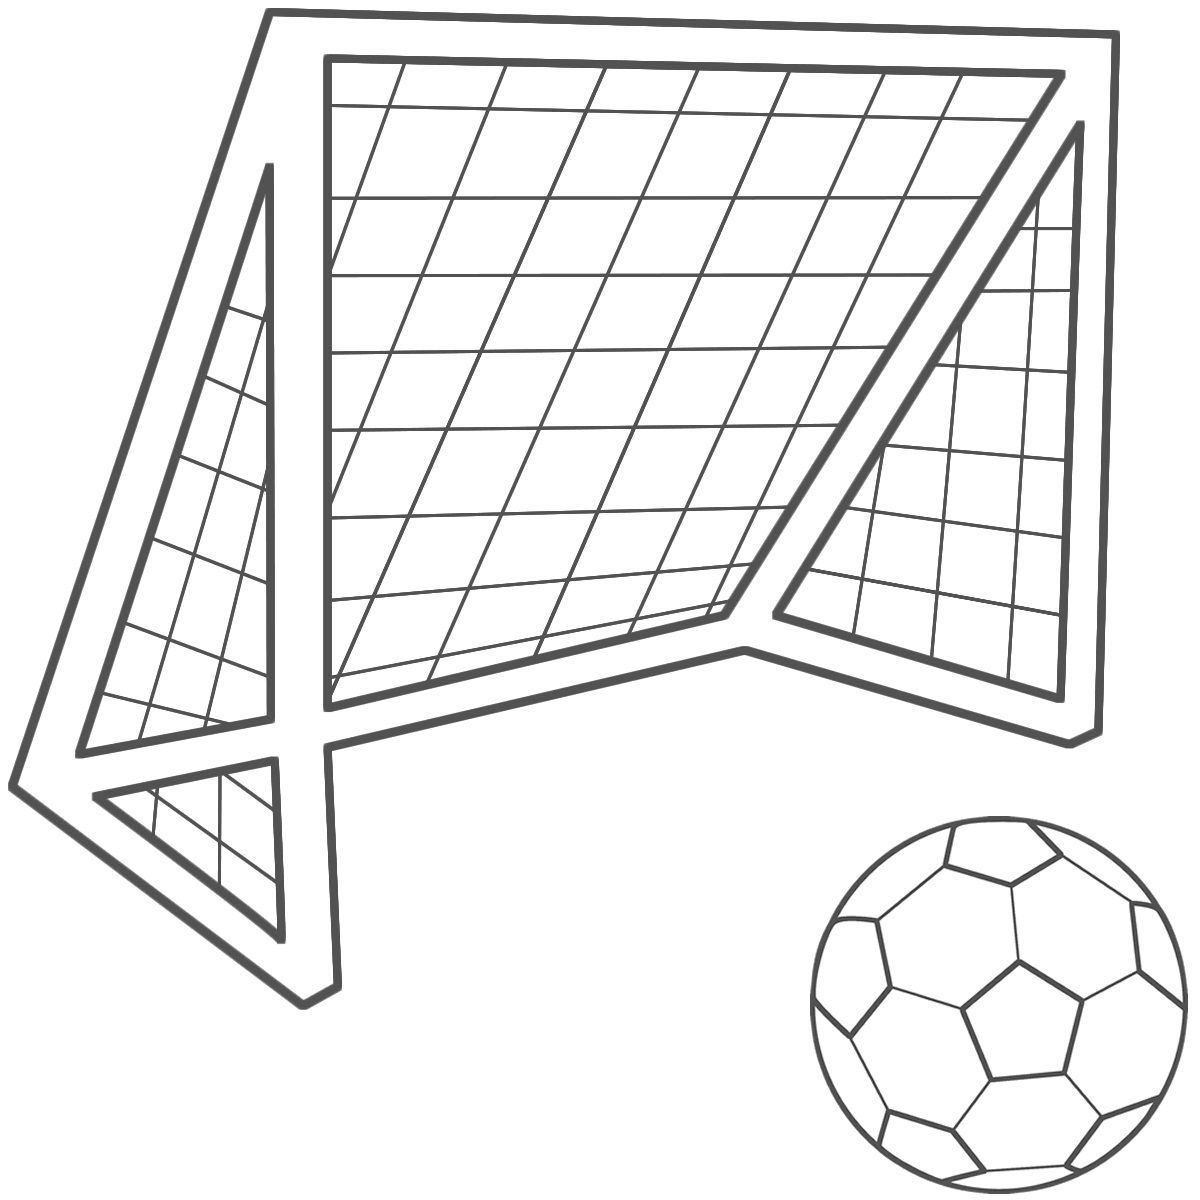 Free Printable Soccer Coloring Pages For Kids Football Coloring Pages Football Kits Soccer Ball